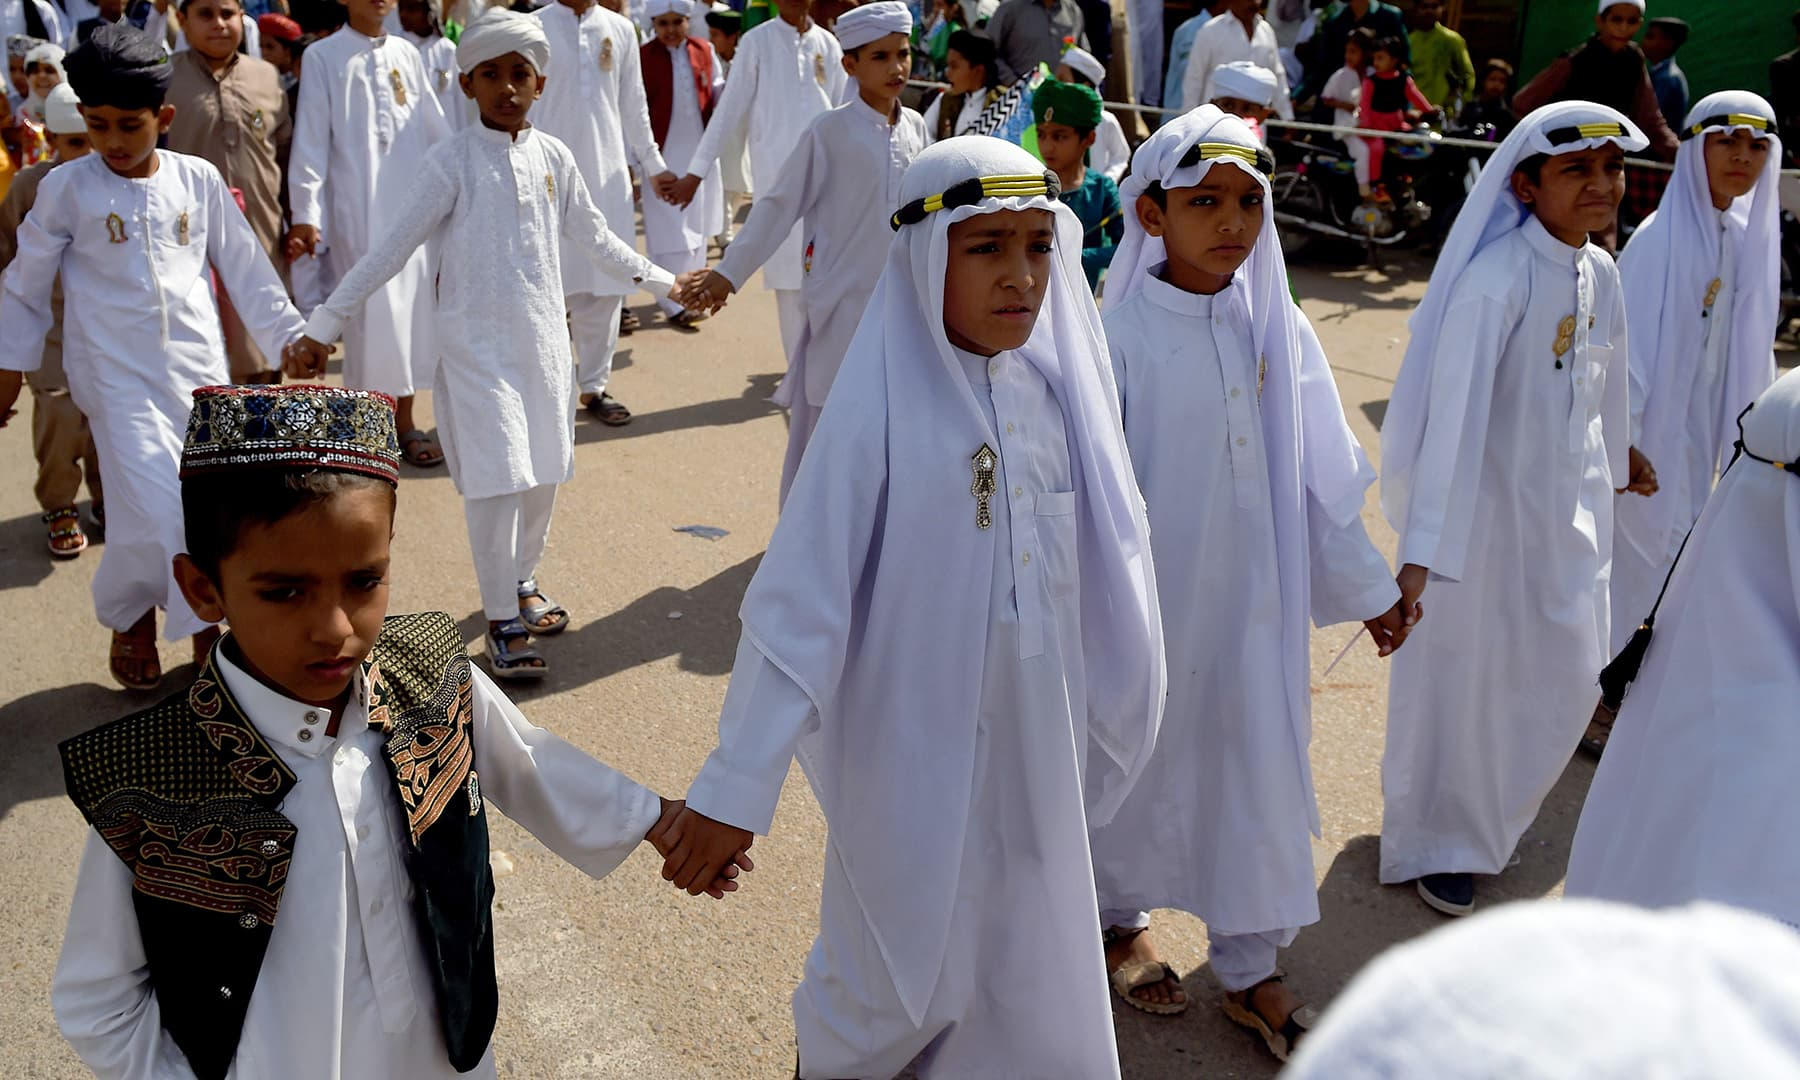 Children in traditional Arabic clothing participate in a procession to mark 12 Rabi-ul-Awwal in Karachi on Sunday. — AFP